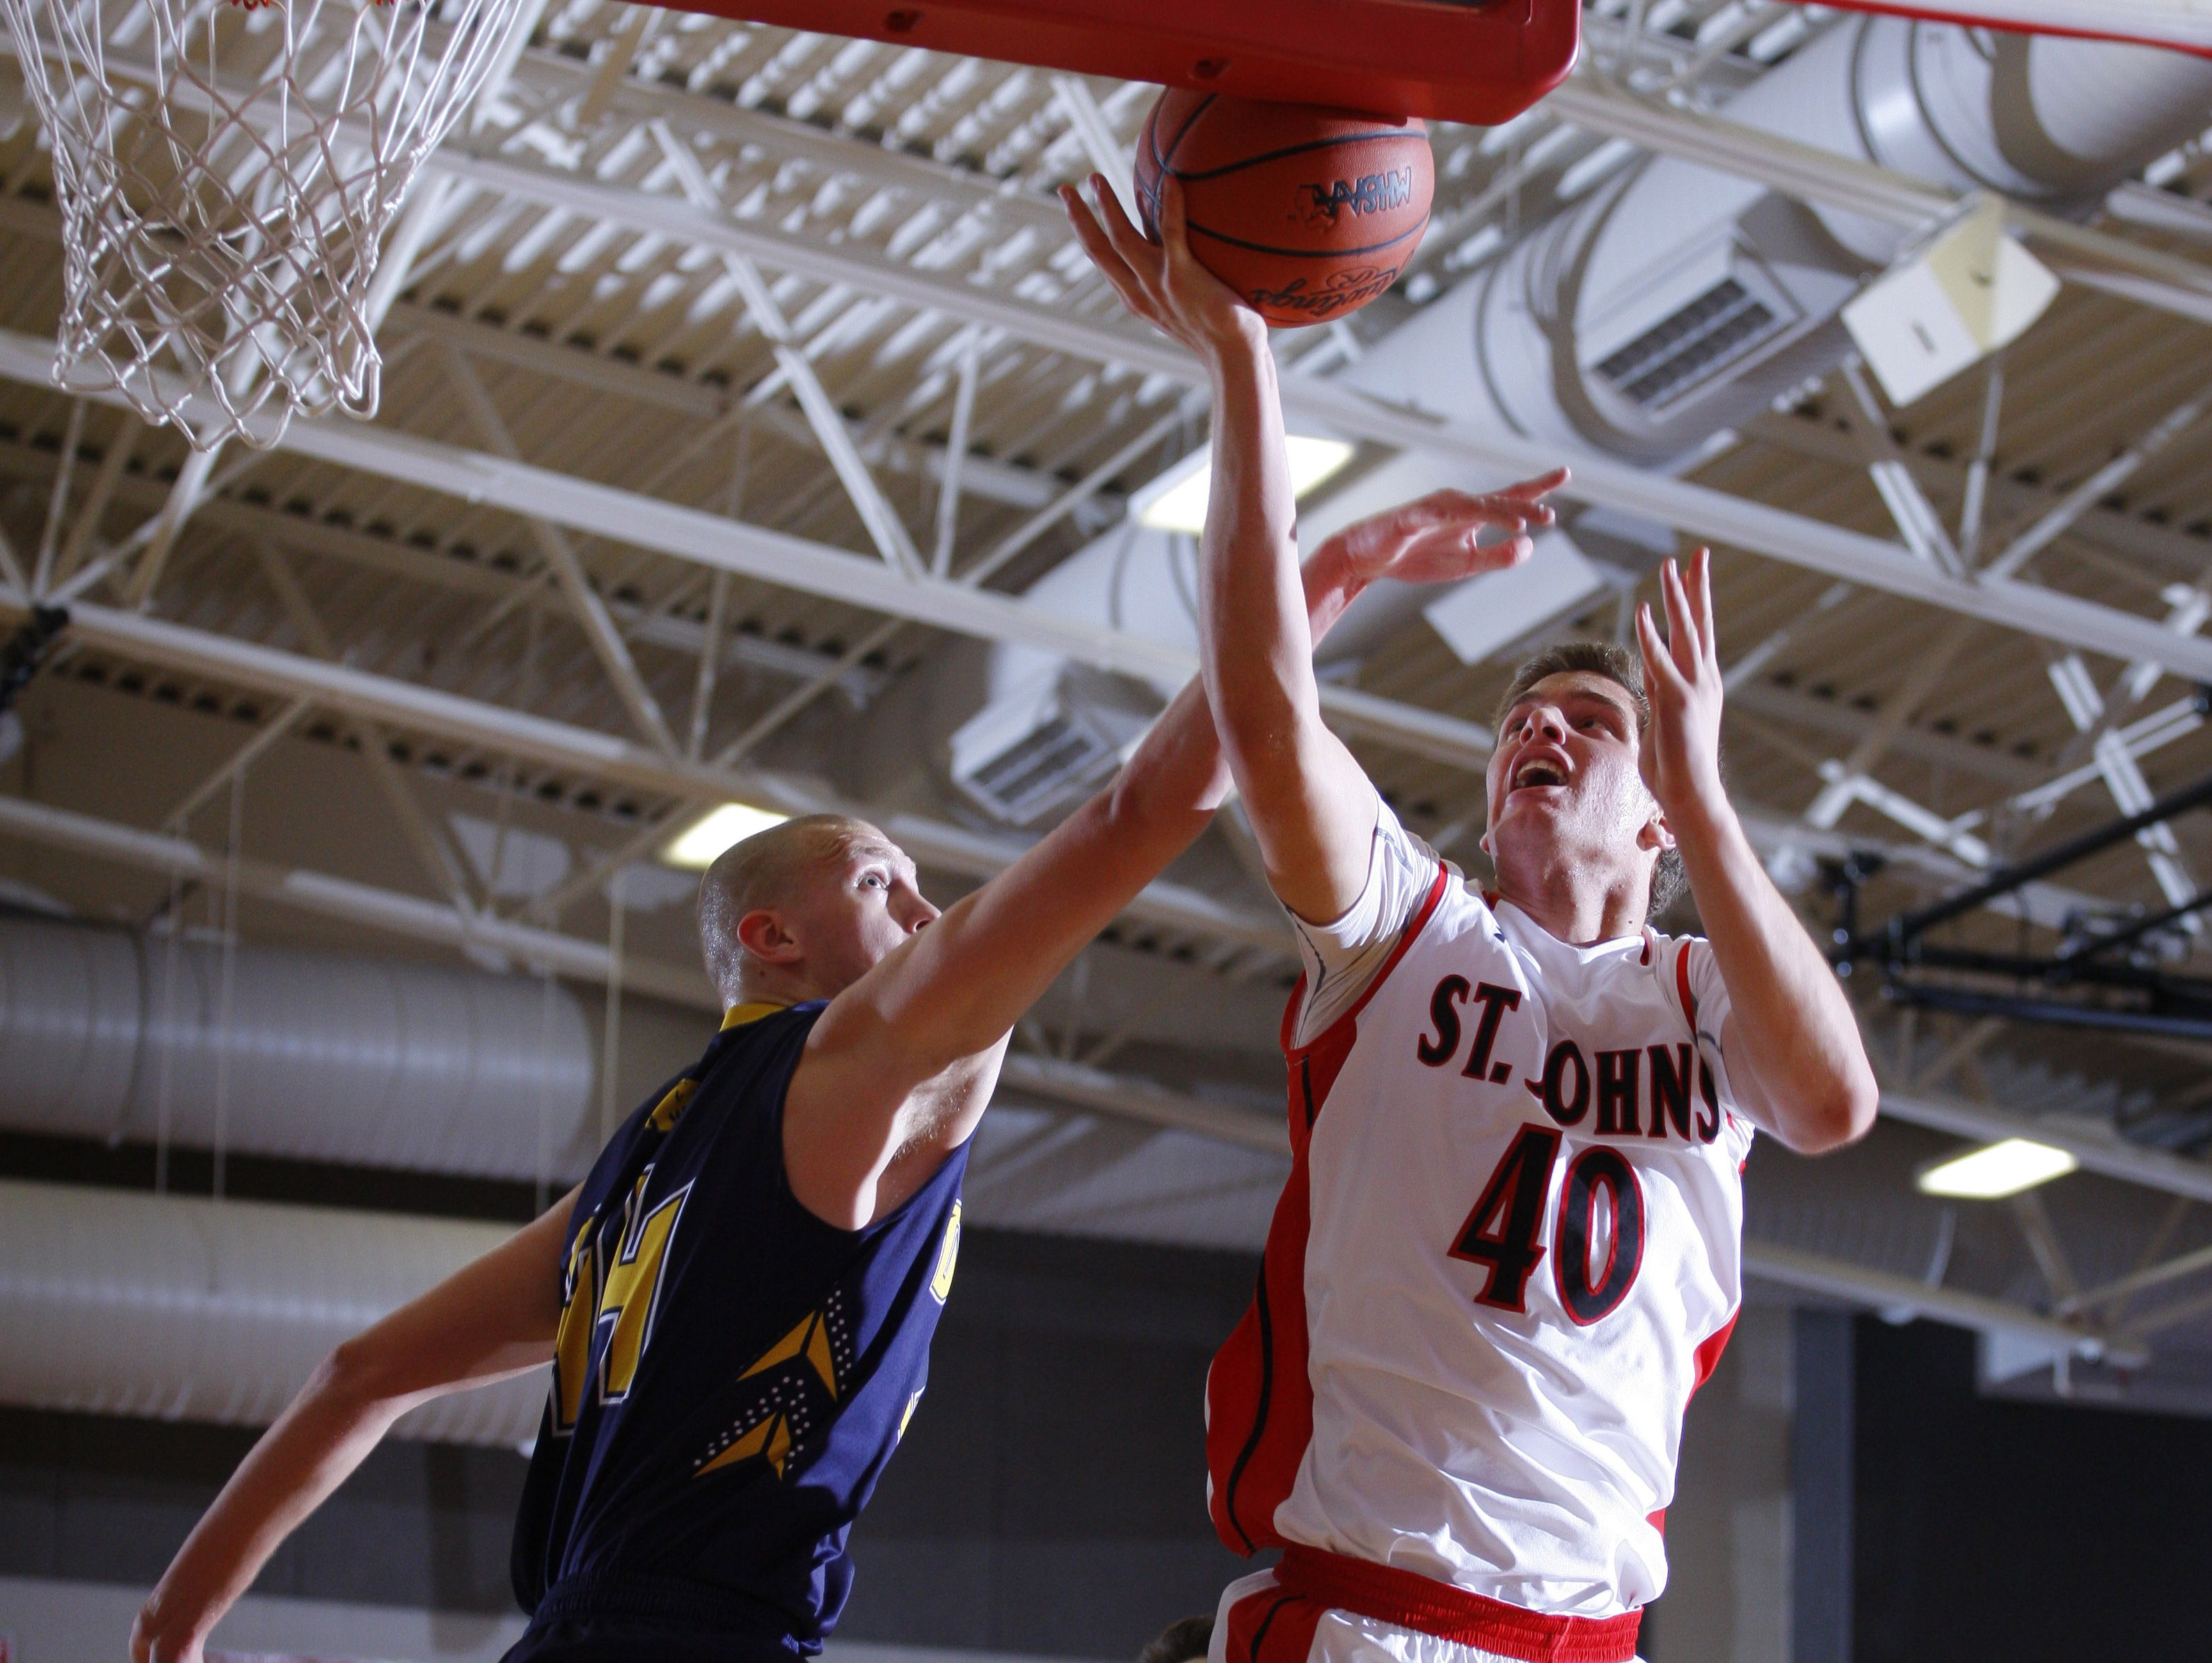 St. Johns' Caleb Paksi, right, goes up for a shot against DeWitt's Tanner Reha Friday, Dec. 16, 2016, in St. Johns, Mich.